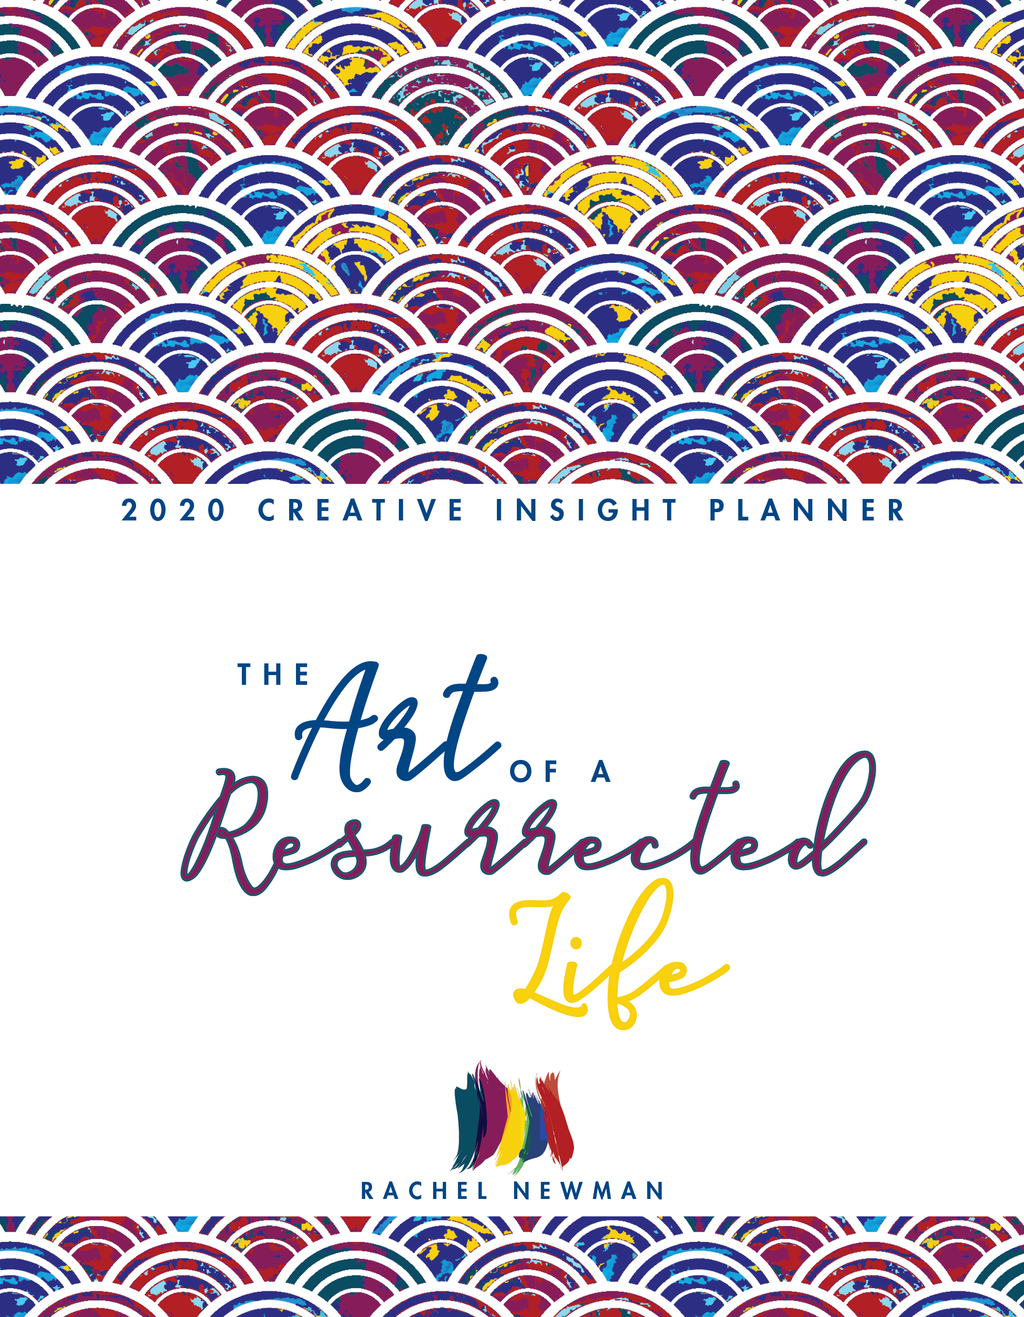 The Art of a Resurrected Life 2020 Creative Insight Planner + ARL Community